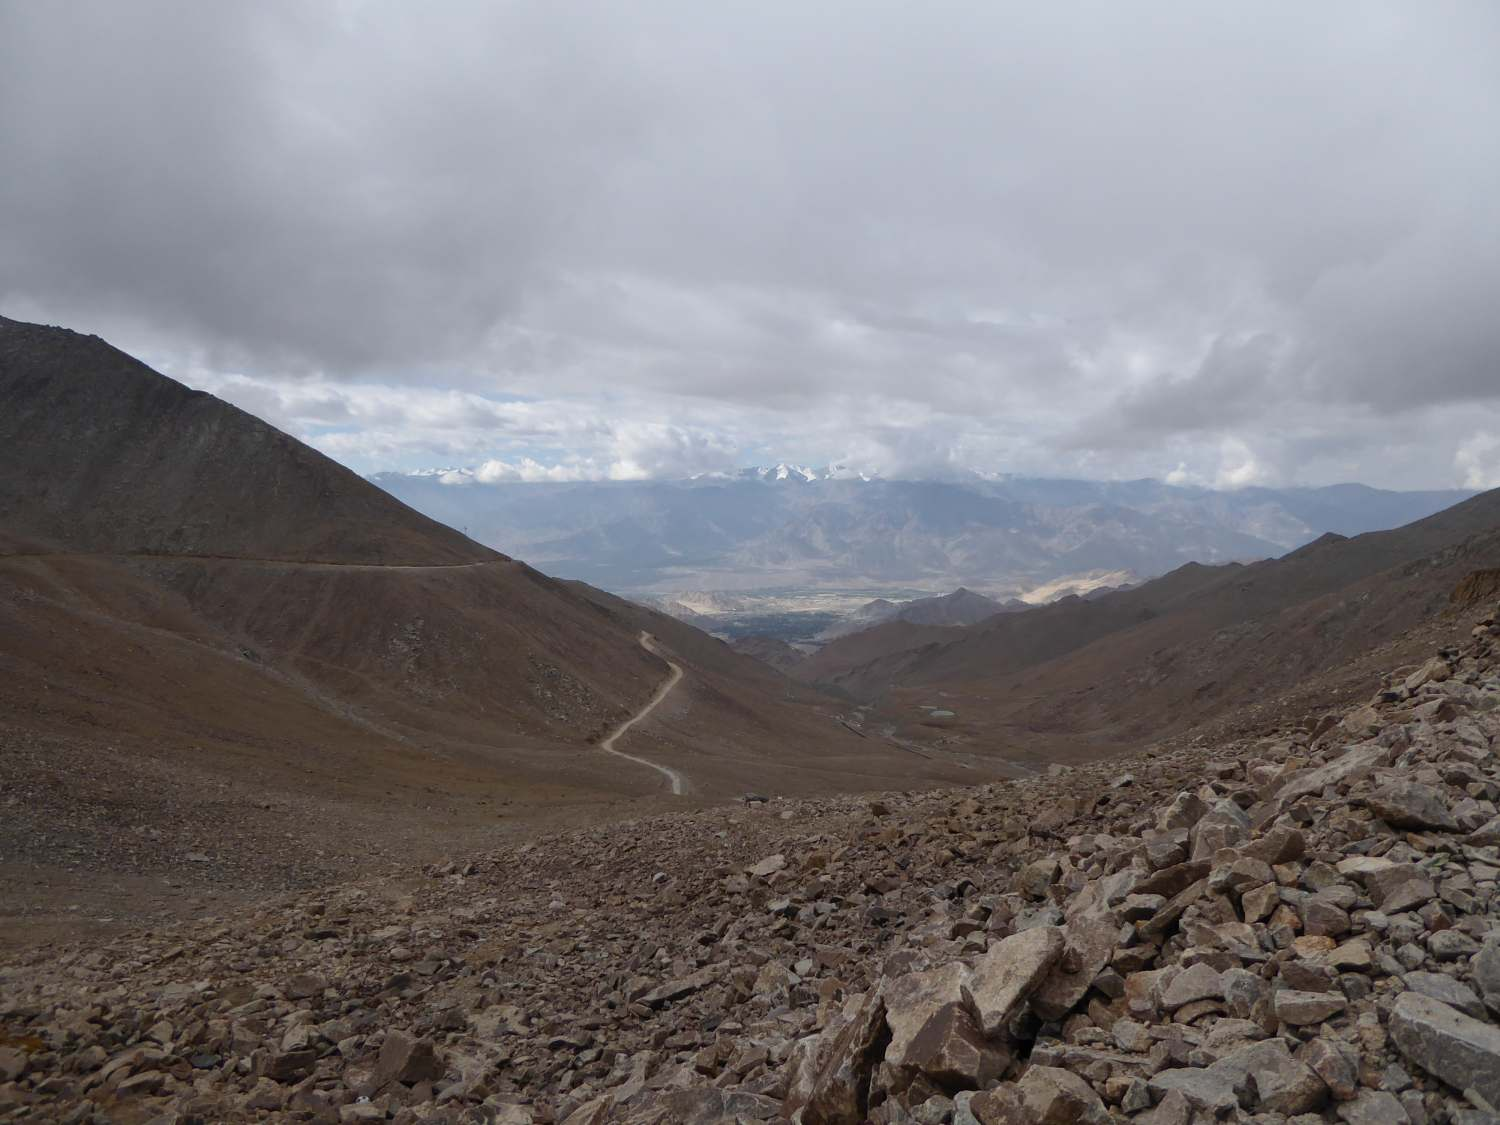 Leh disappearing in the clouds